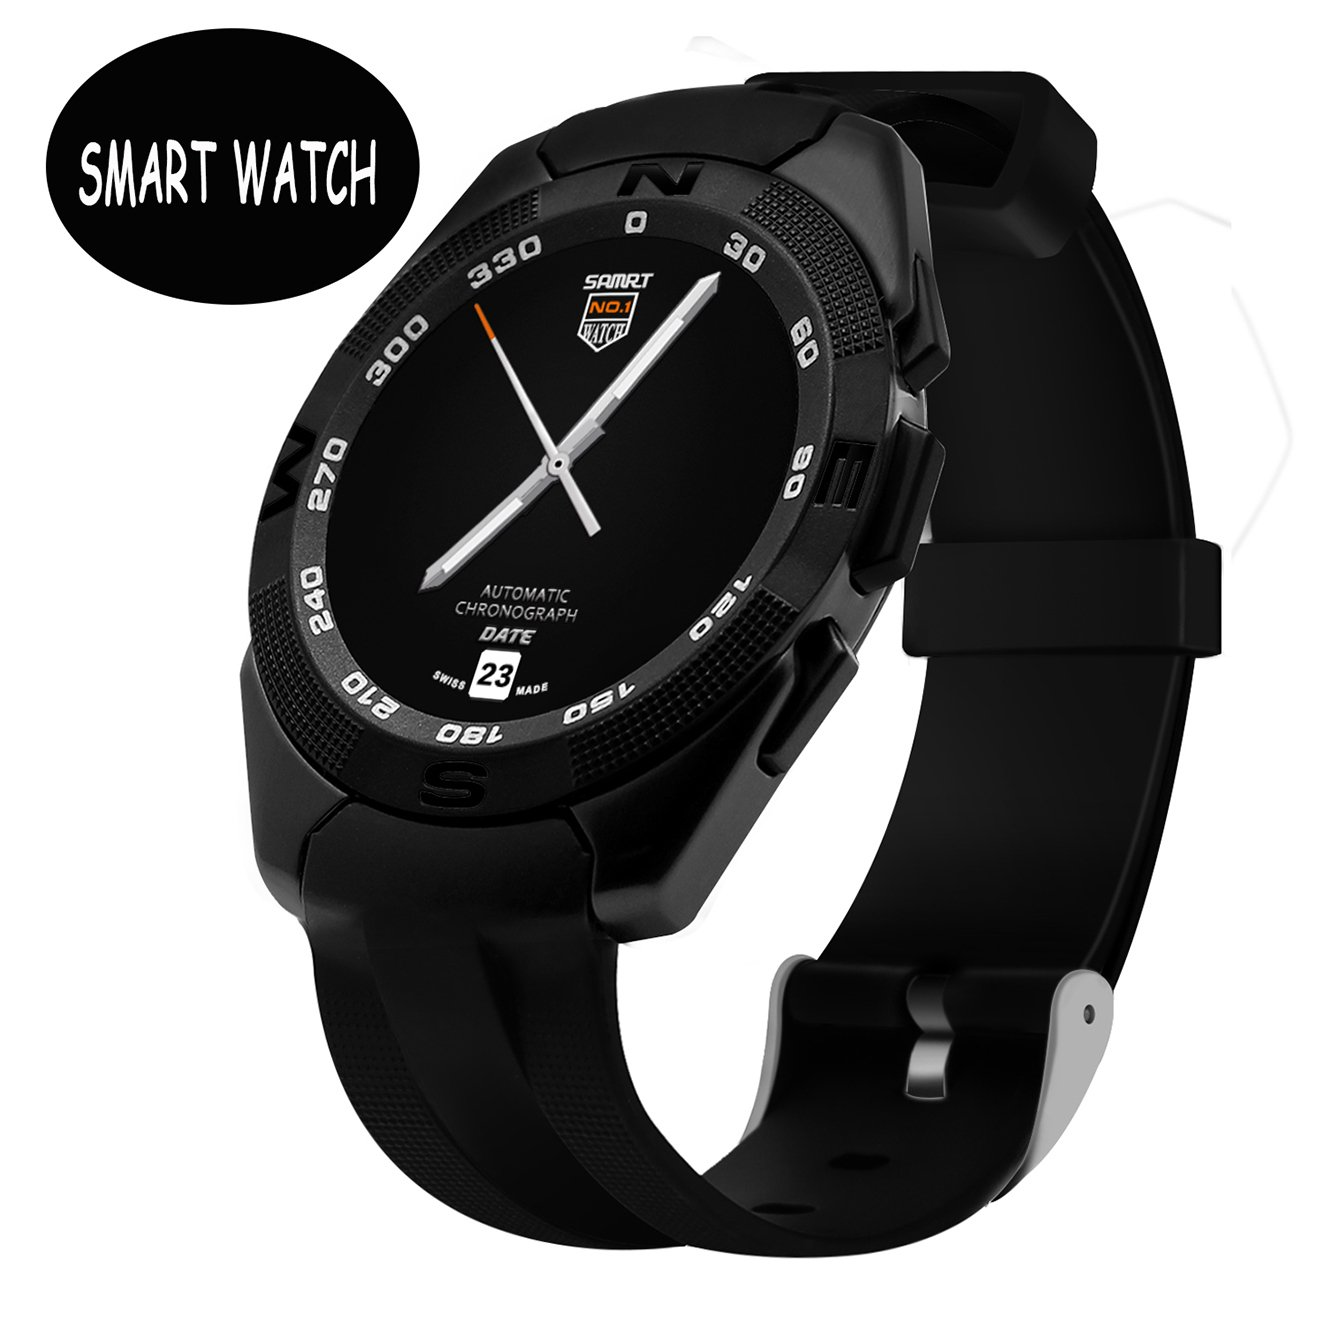 Bluetooth Smartwatch Android - Bluetooth Smart Watch Niños ...